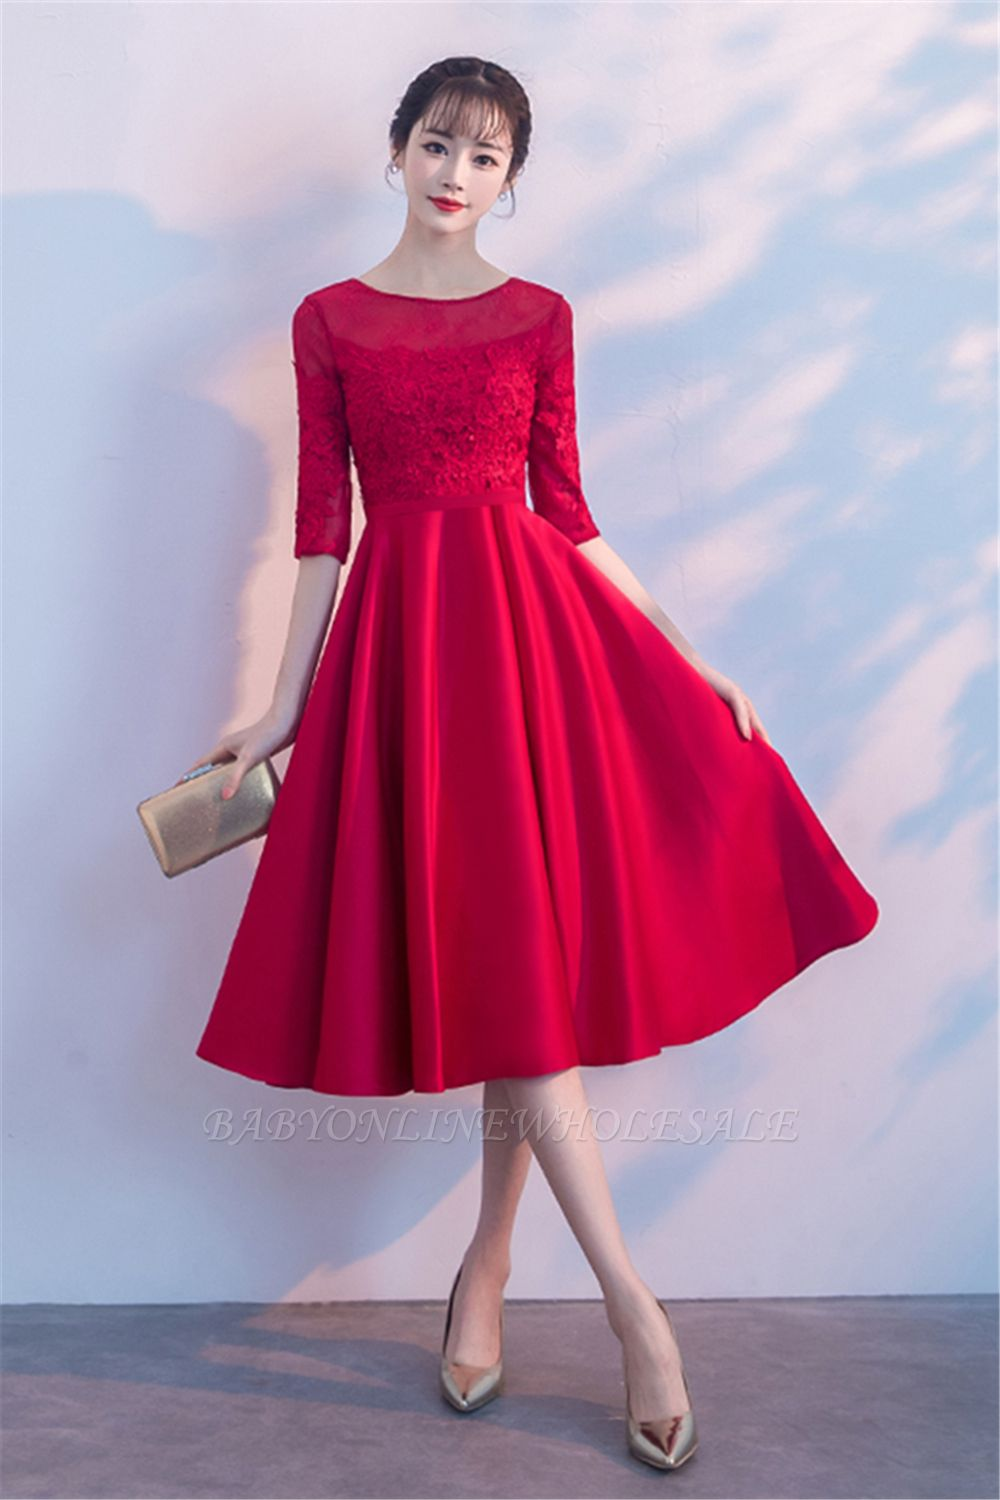 Lace A-Line Zipper Red Half-Sleeves Homecoming Dress